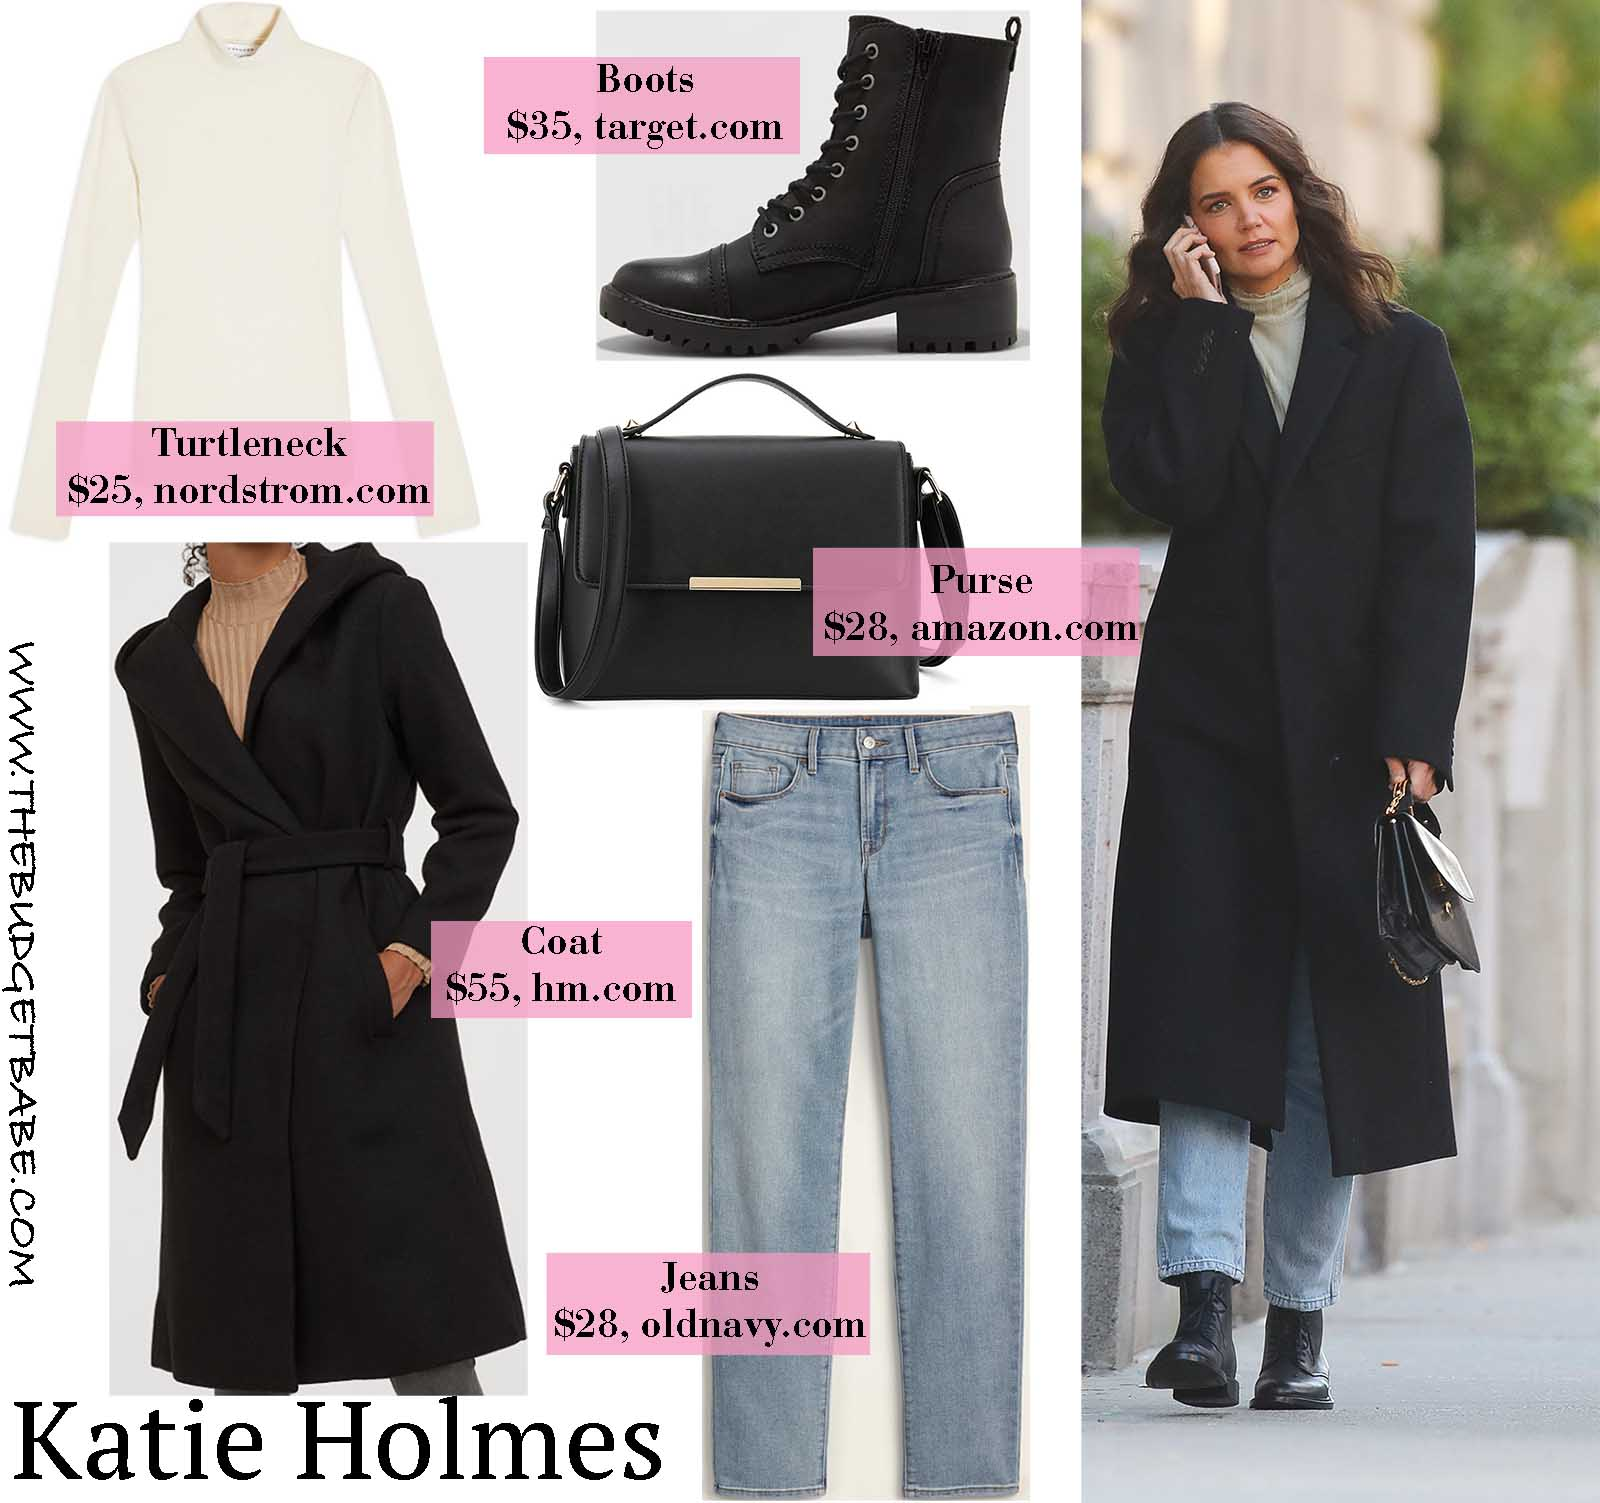 Katie Holmes stays warm in a sleek oversized wool coat.